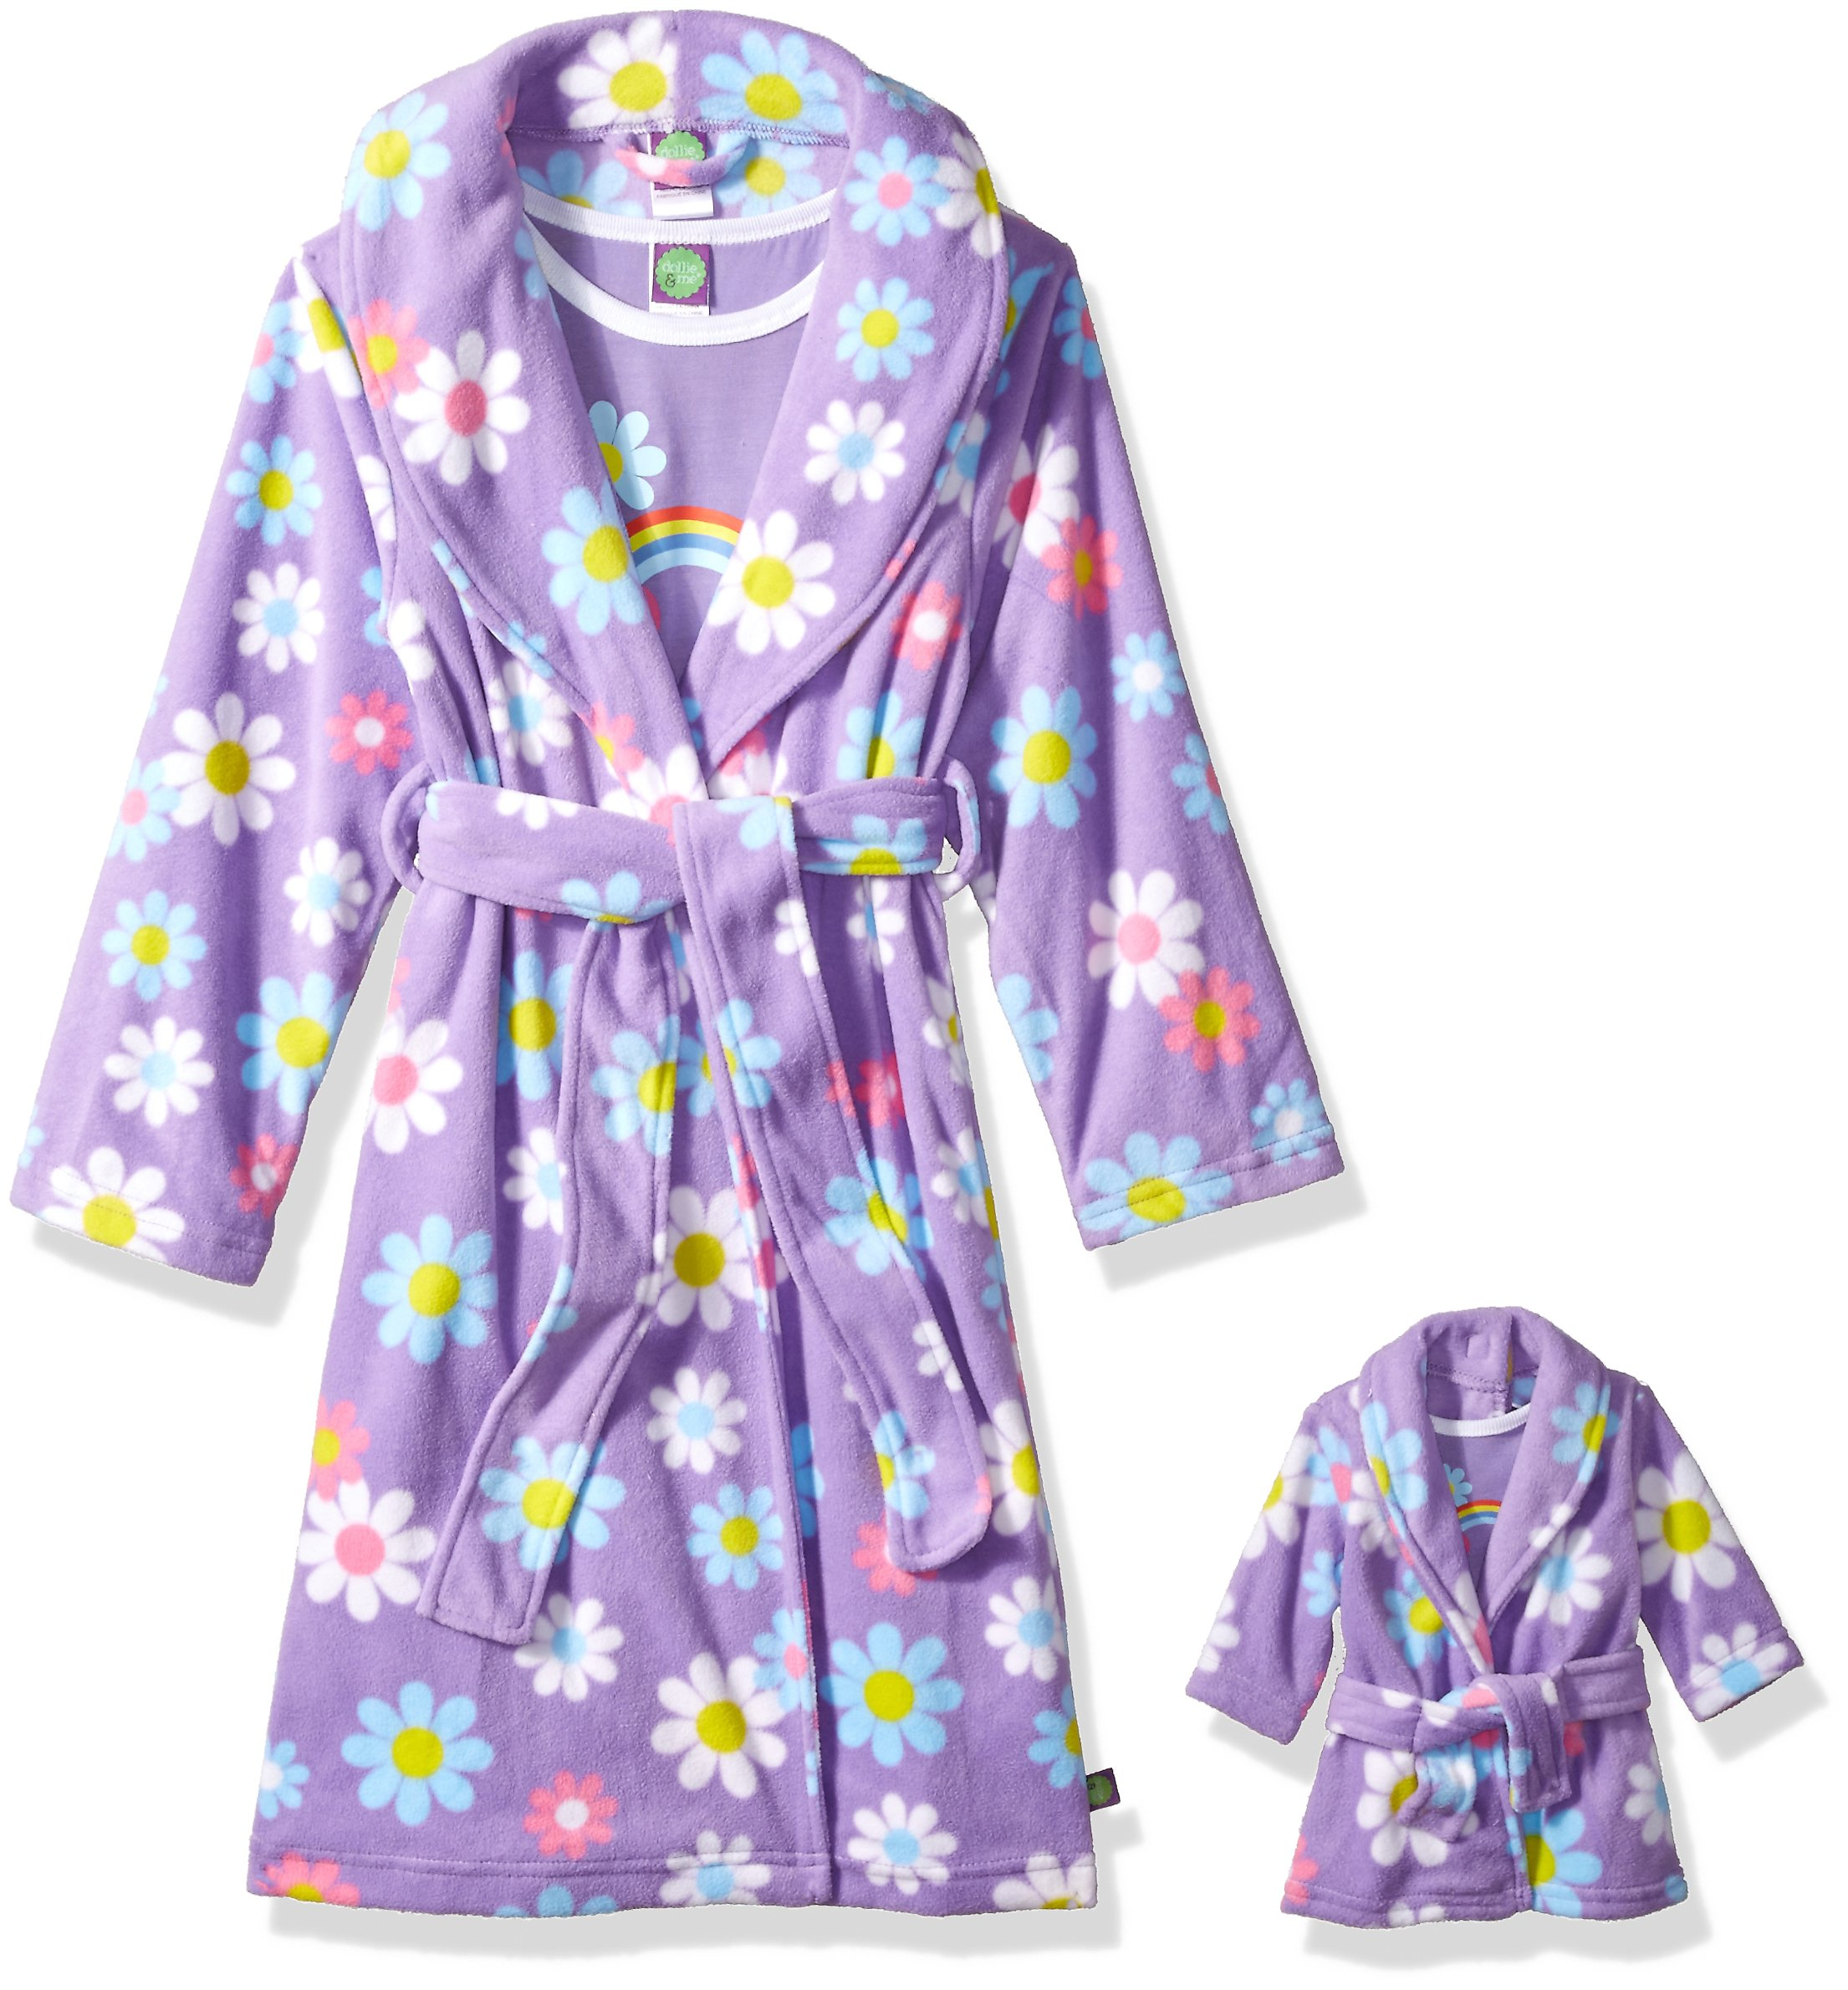 Dollie & Me Big Girls' Printed Robe Set with Matching 18 inch Doll Outfit, Purple Floral, M